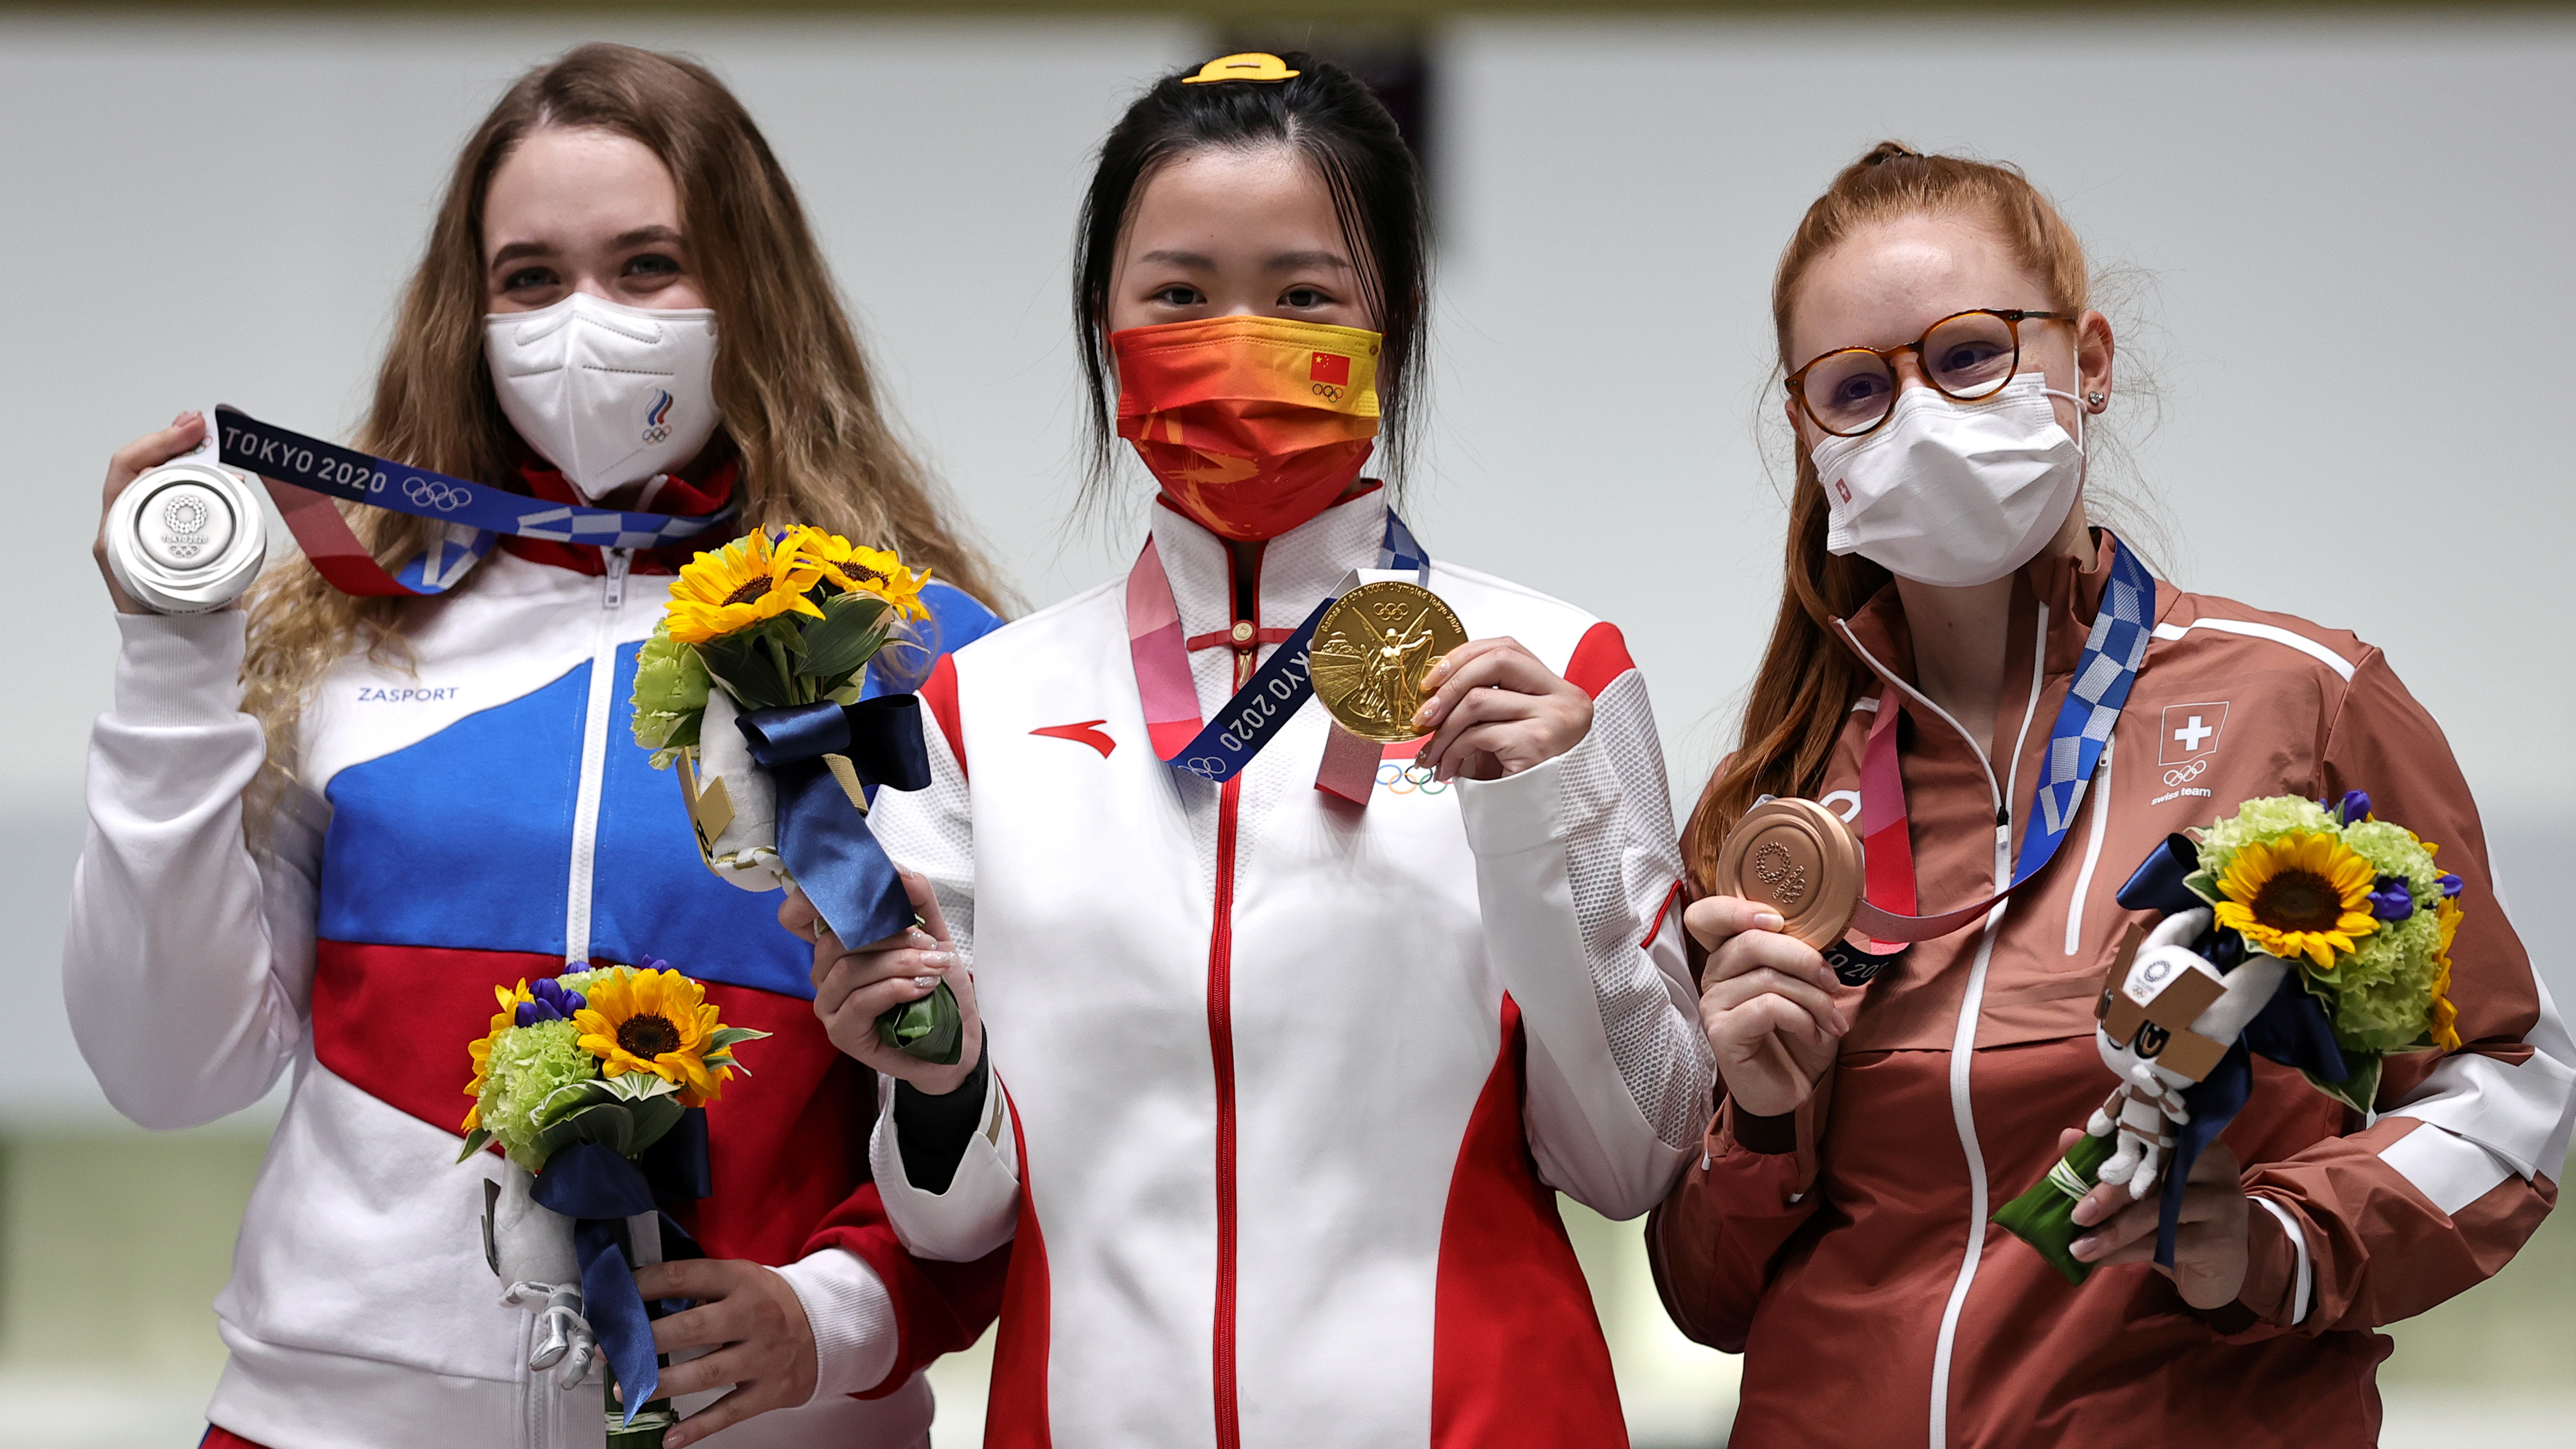 Tokyo 2020 Olympics - Shooting - Women's 10m Air Rifle - Medal Ceremony - Asaka Shooting Range, Tokyo, Japan – July 24, 2021. Gold medallist Yang Qian of China celebrates on the podium with silver medallist, Anastasiia Galashina of the Russian Olympic Committee and bronze medallist, Nina Christen of Switzerland REUTERS/Ann Wang